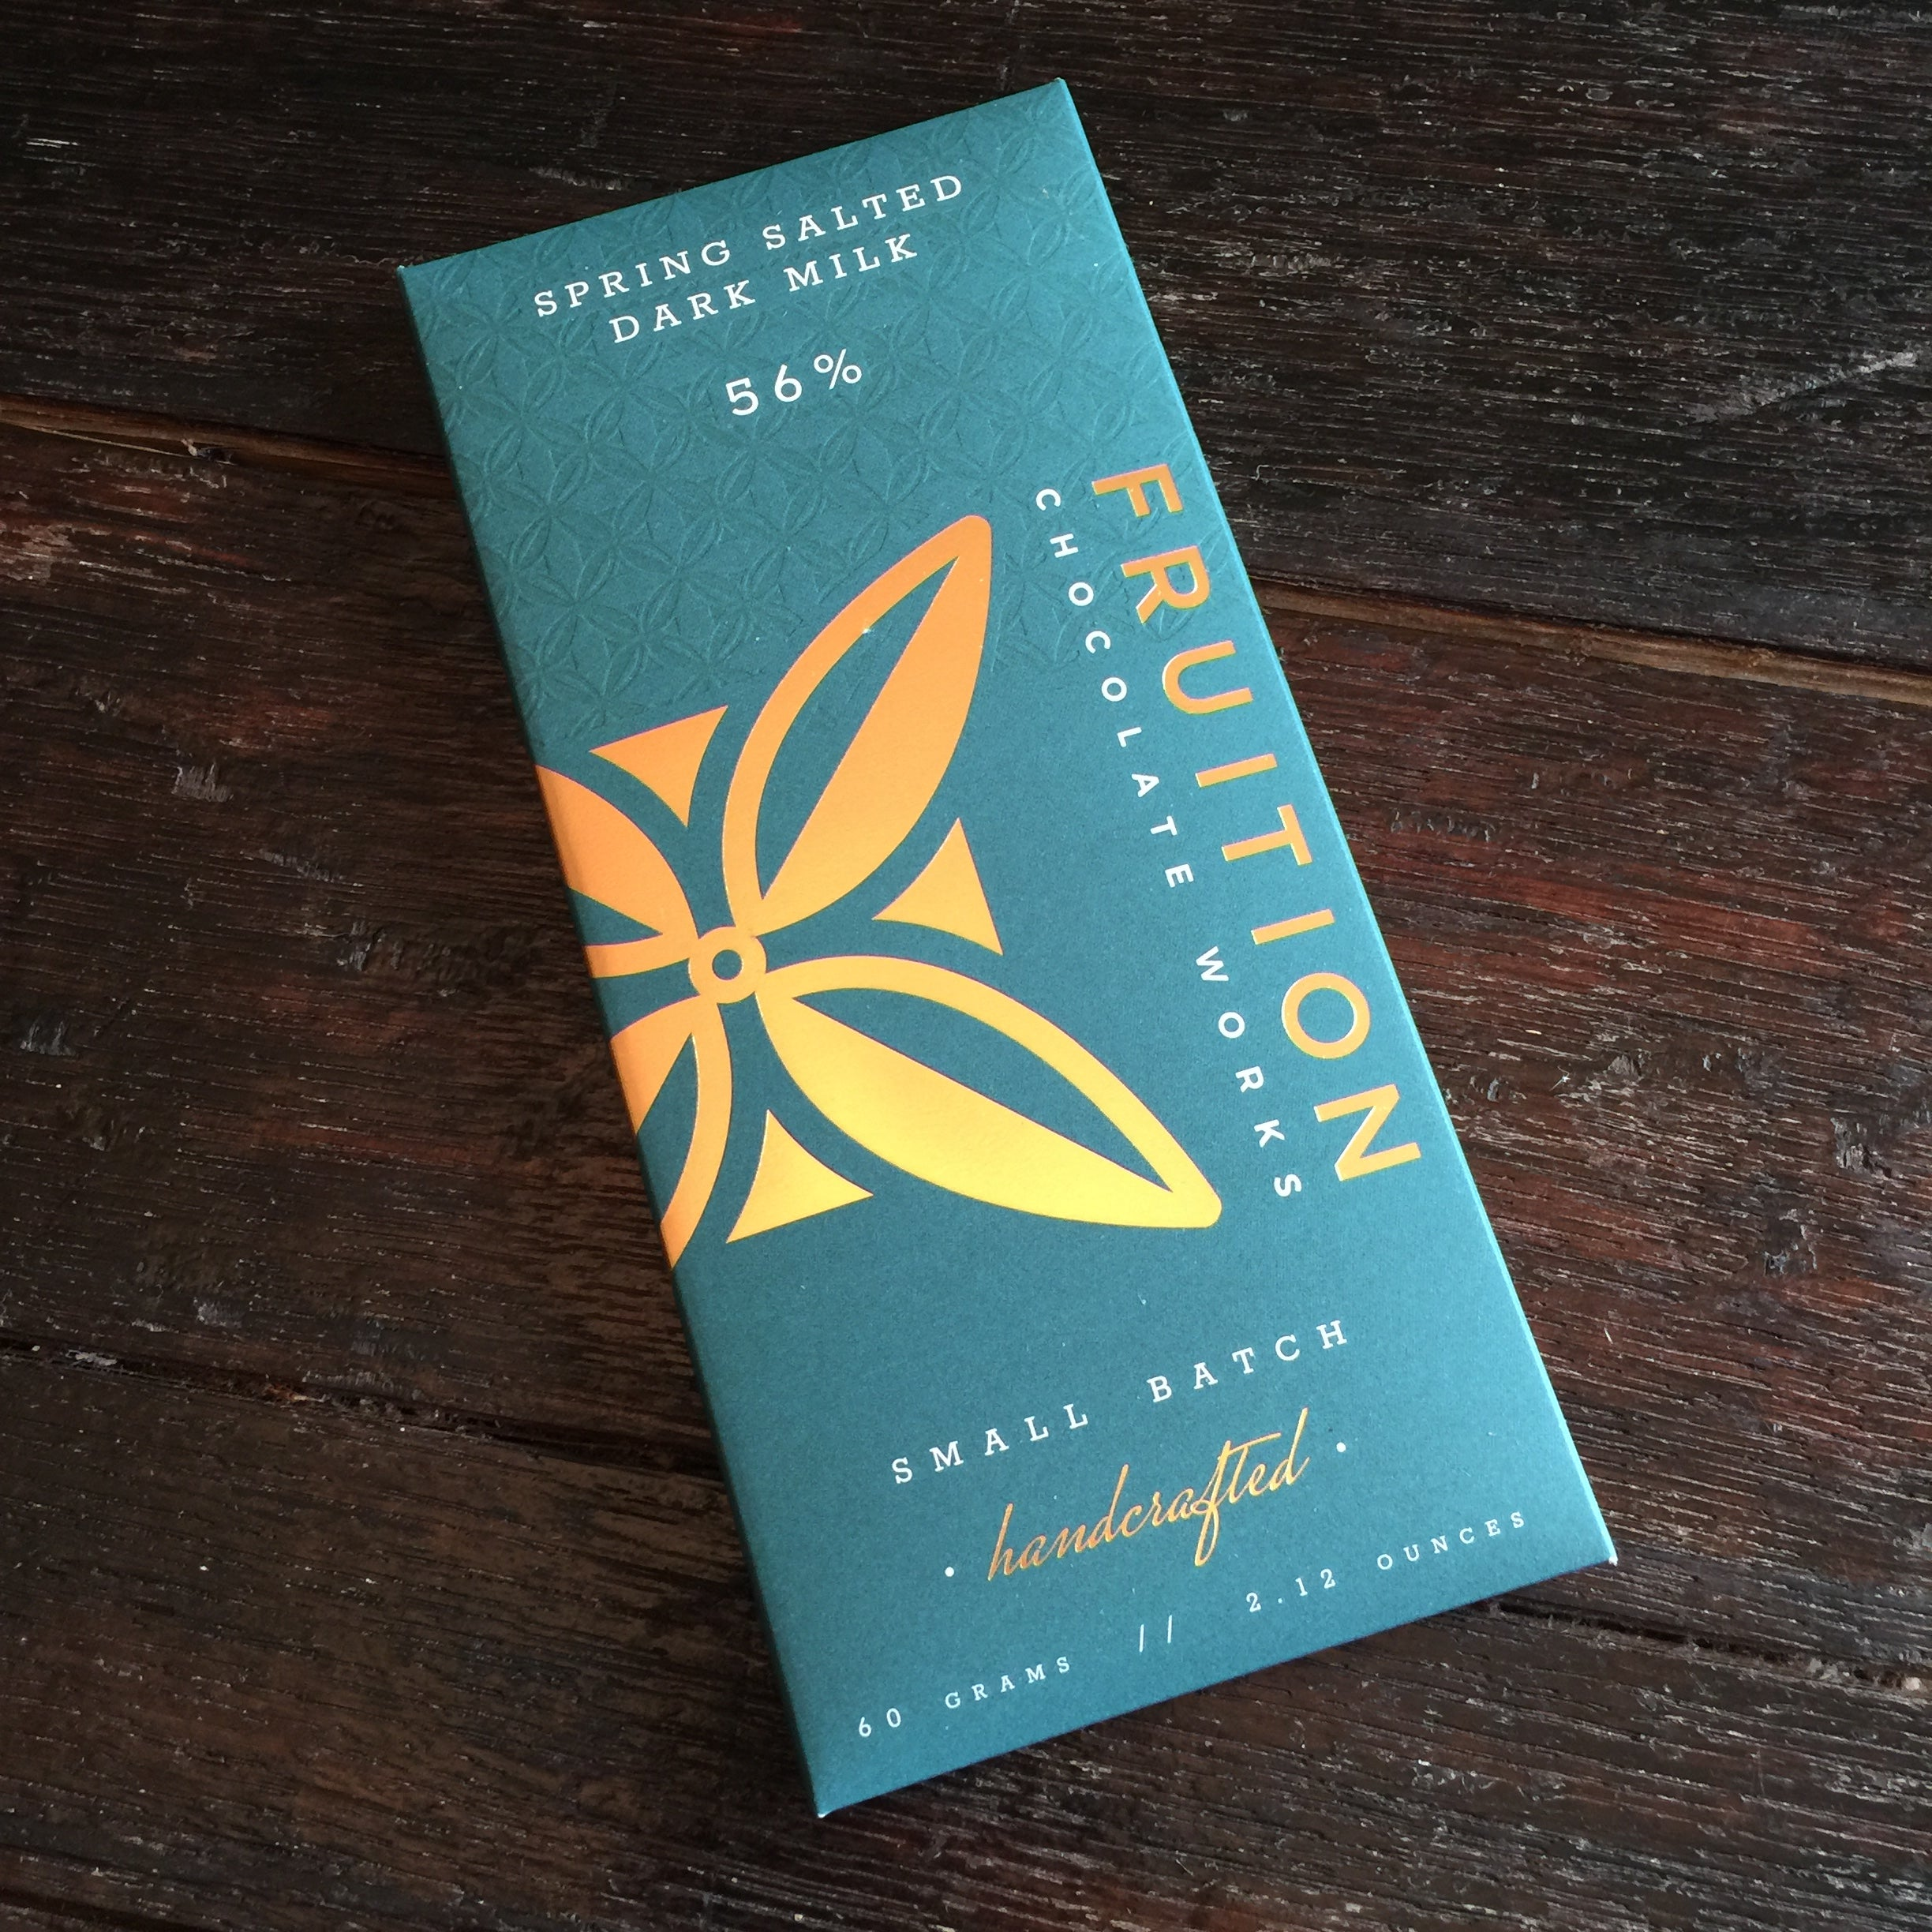 Fruition Chocolate Works 56% Spring Salted Dark Milk Bar